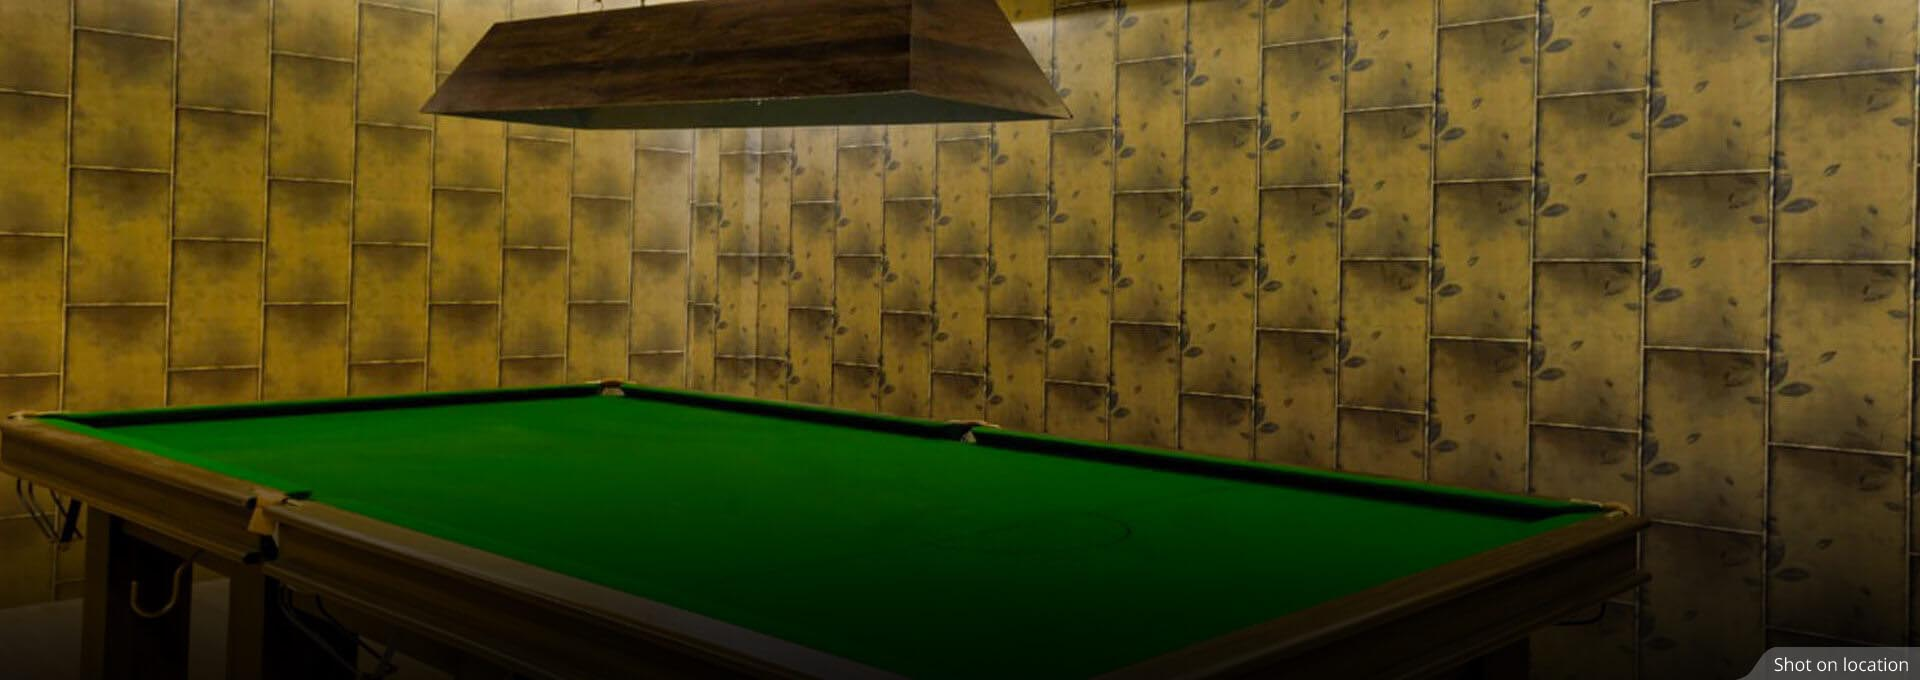 Billiards in Club Medows by House of Hirandani in Bannerghatta, Bengaluru